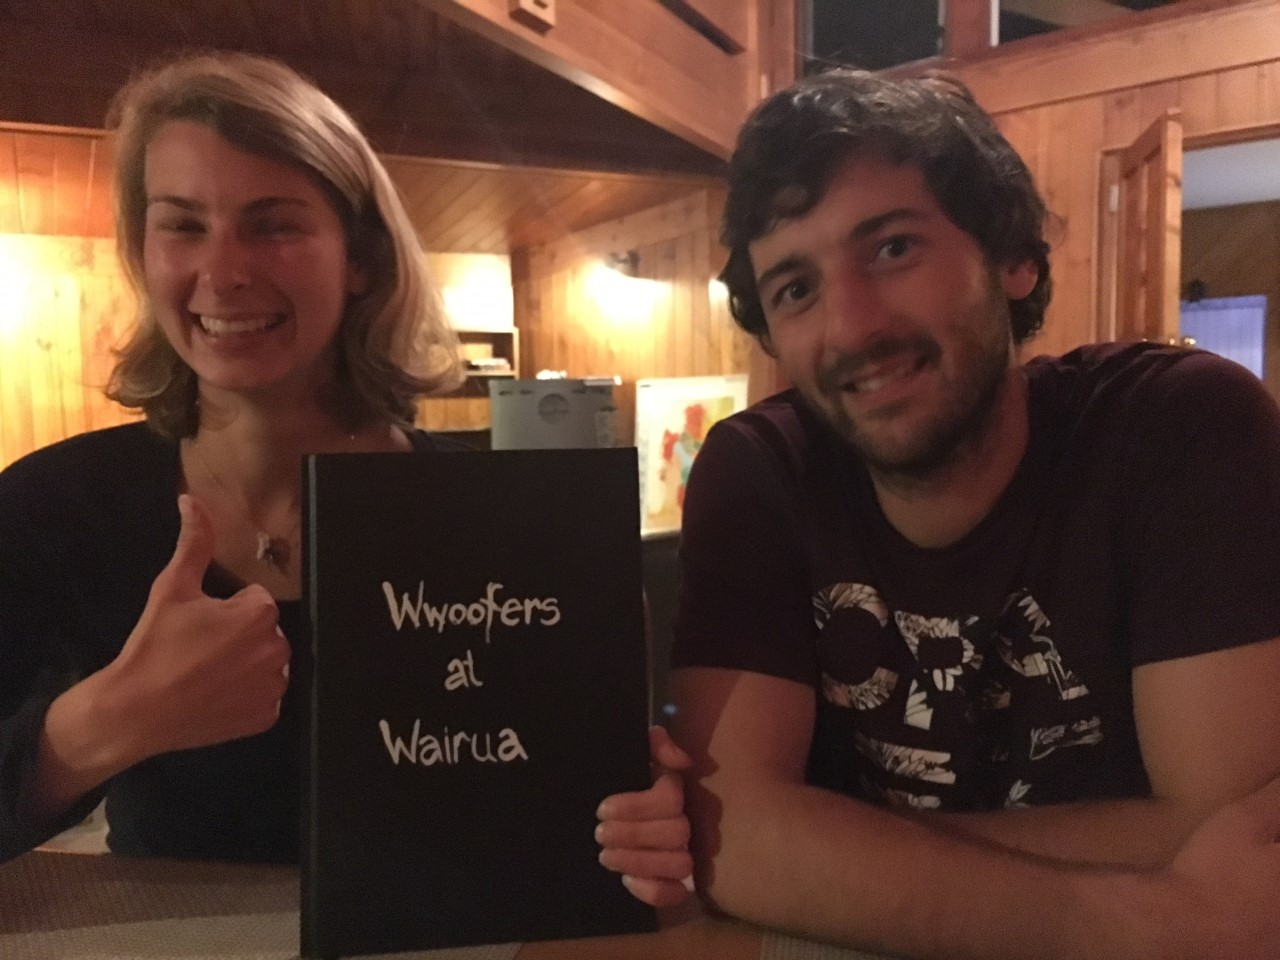 Lucy and Paul with the Woofersbook